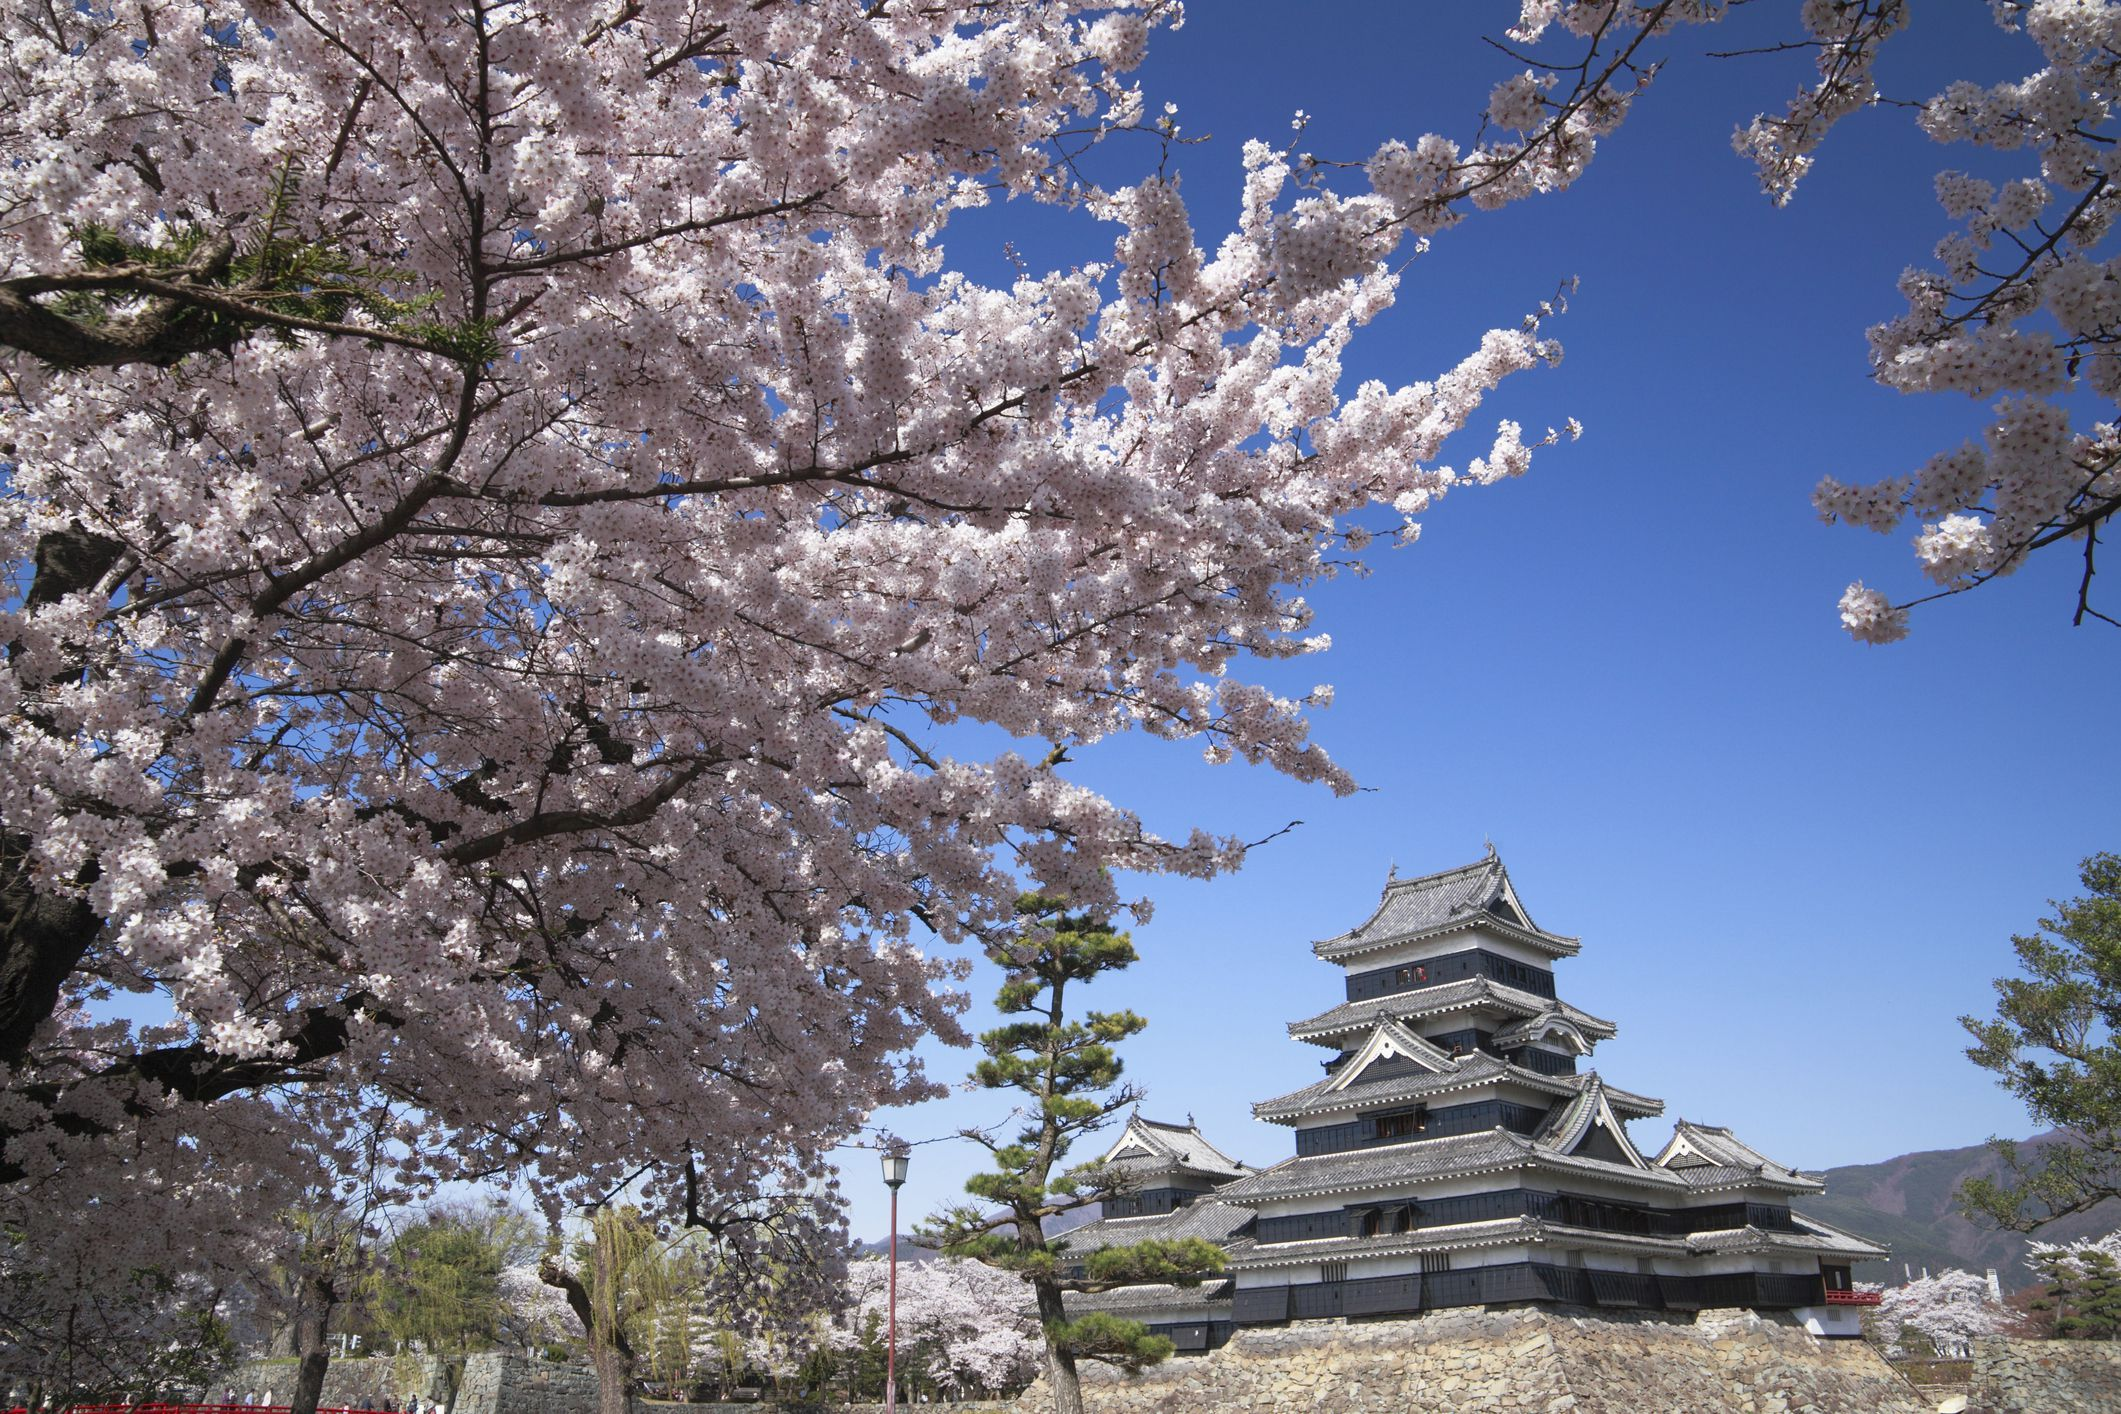 Close-up of cherry blossom tree with Matsumoto Castle in the background